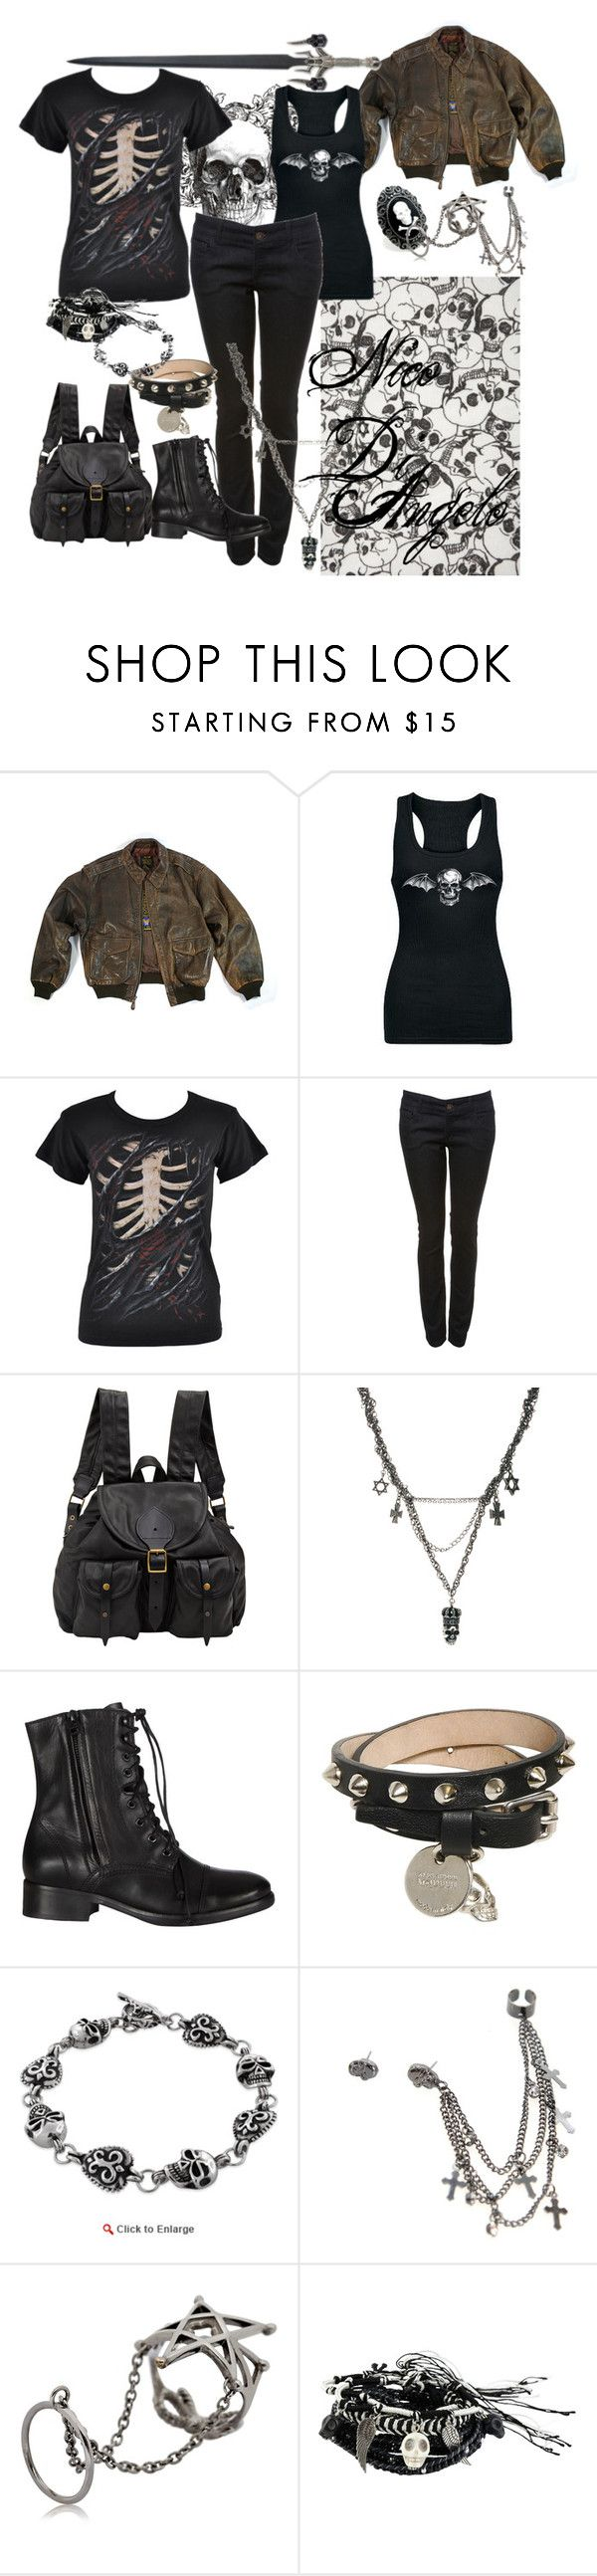 """Percy Jackson and the Olympians; Nico De Angelo"" by meagan-wymbs ❤ liked on Polyvore featuring Miss Selfridge, Jas M.B., Religion Clothing, AllSaints, Alexander McQueen, Gisele Ganne, ALDO and D.L. & Co."